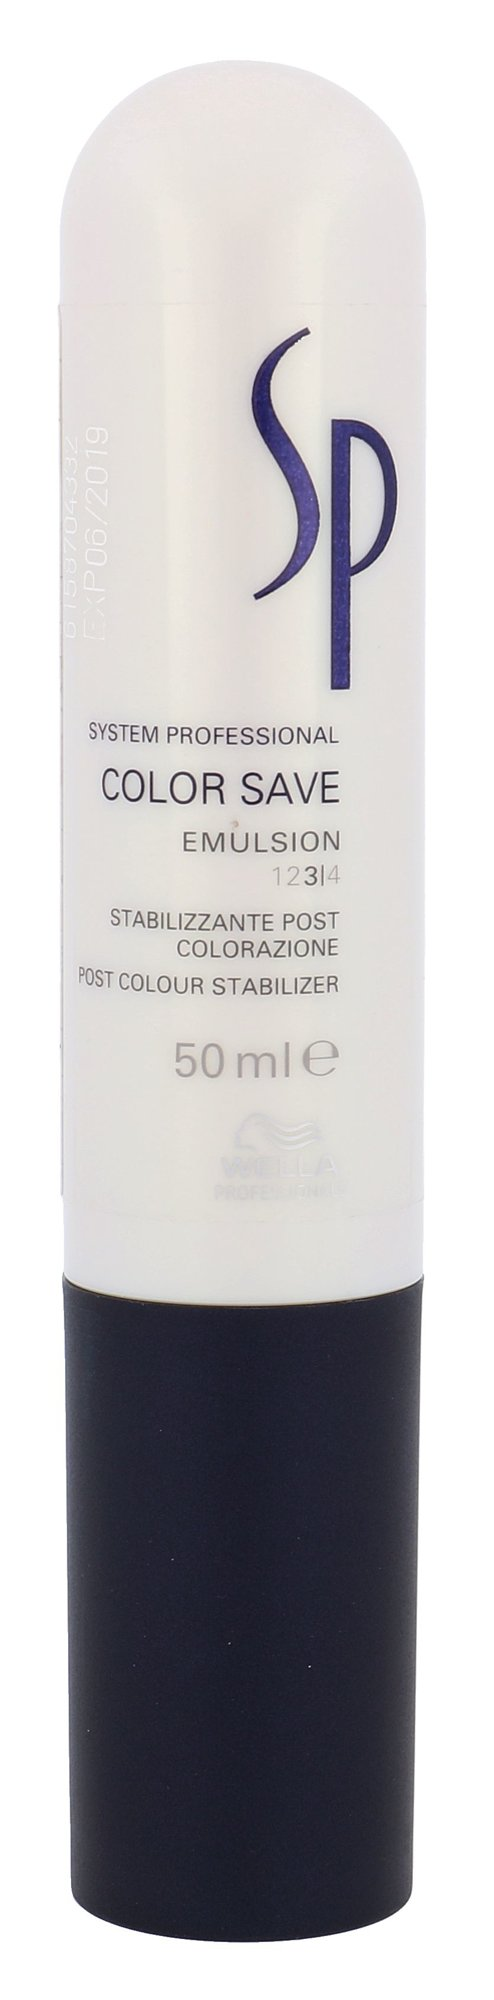 Wella SP Color Save Cosmetic 50ml